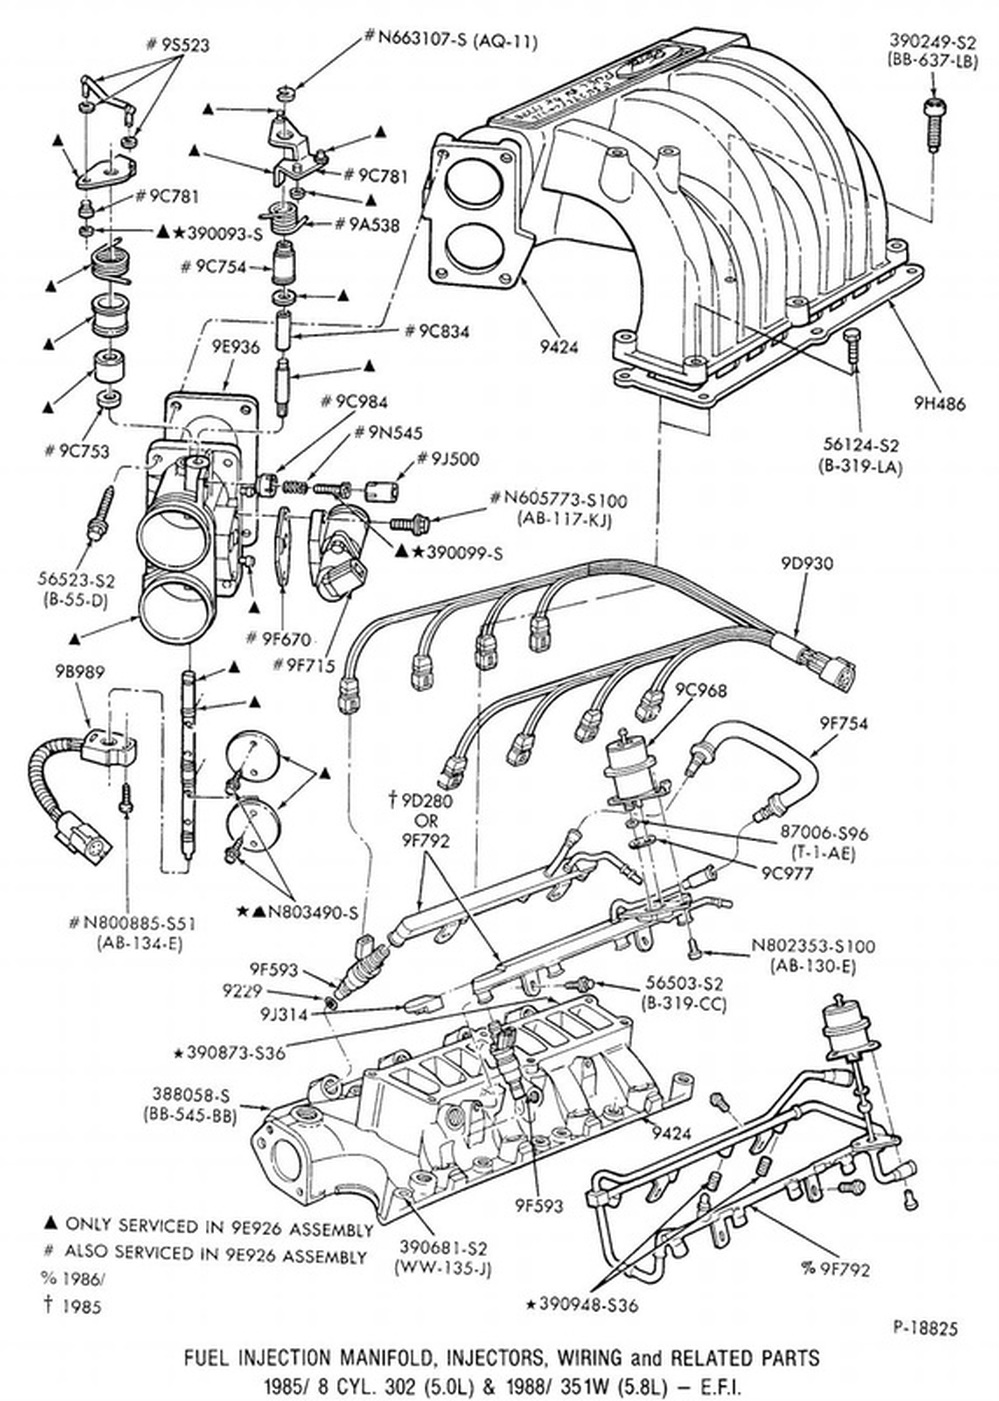 1988 and on 460 fuel injection manifold injectors wiring related parts